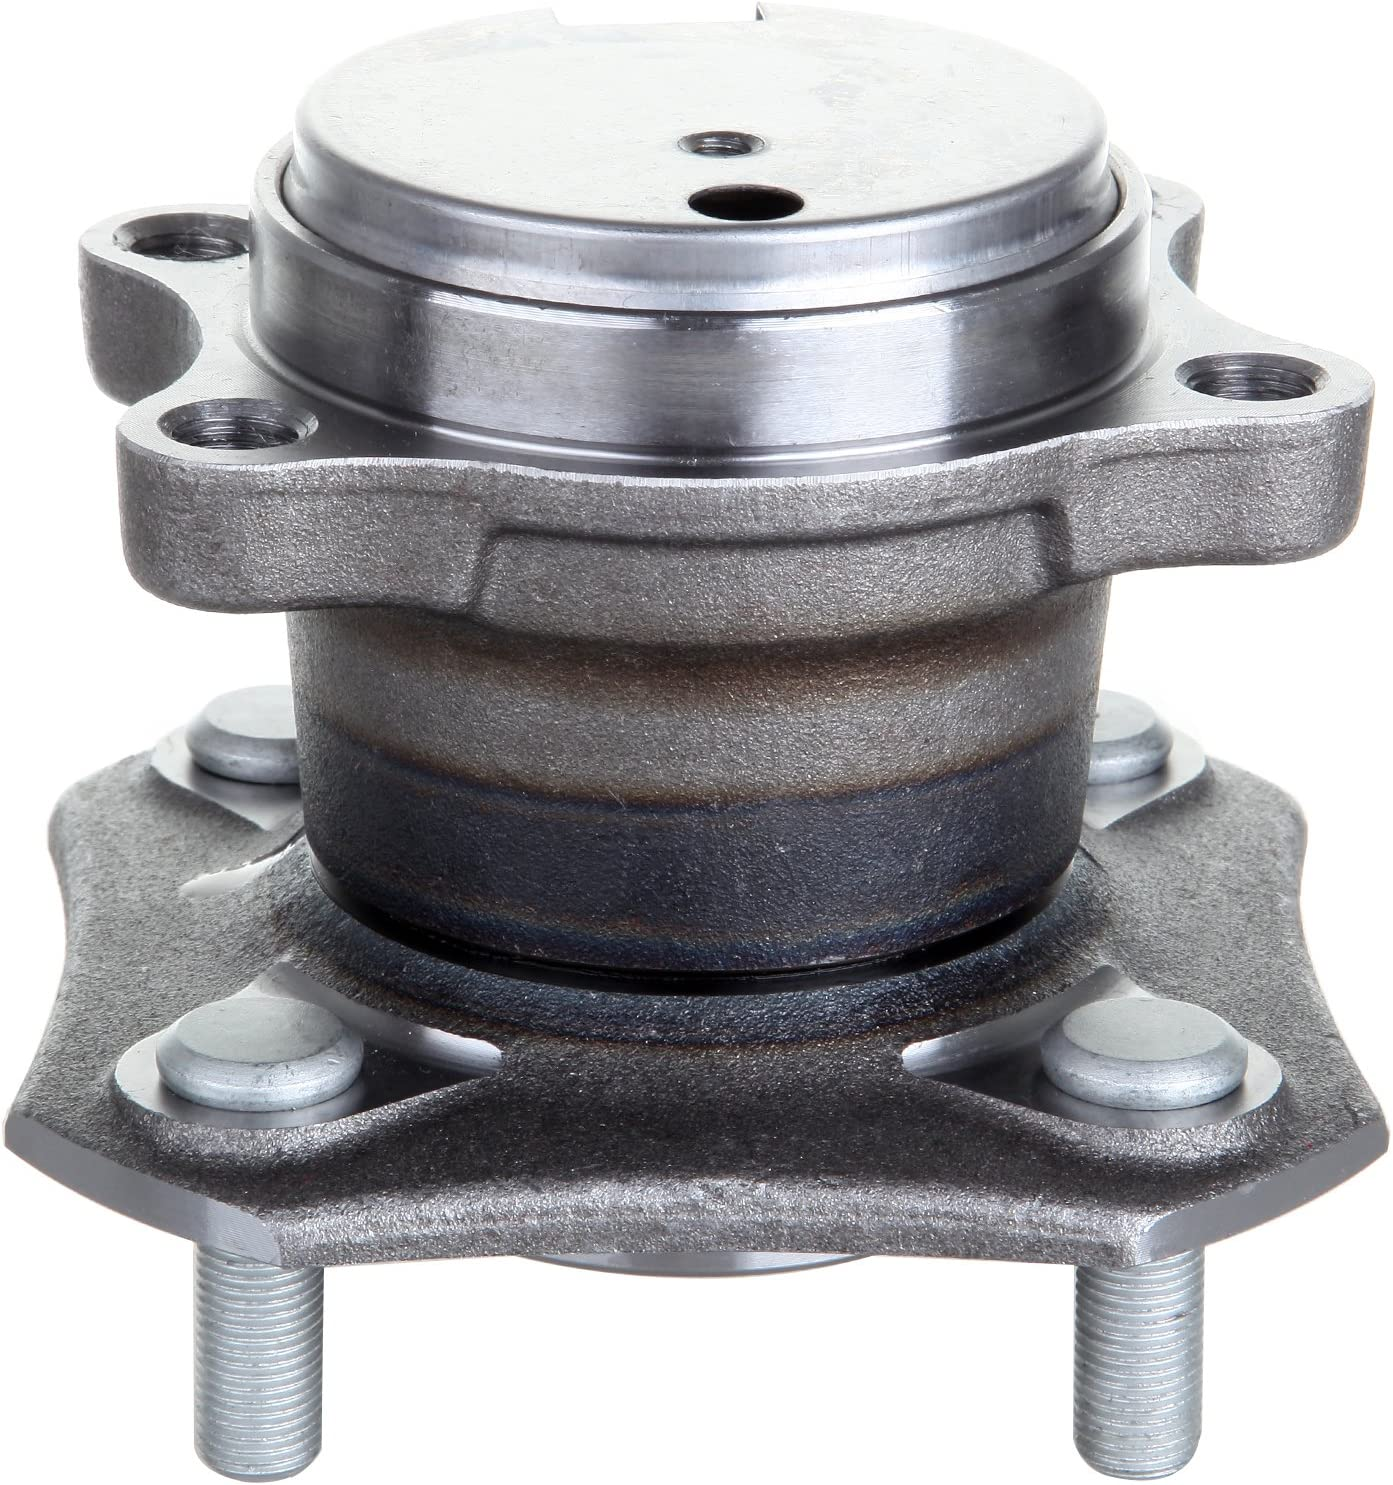 SCITOO 512384 Special sale item Surprise price Rear Wheel Hub Bearing Assembly 2007-20 fit 1 Pack